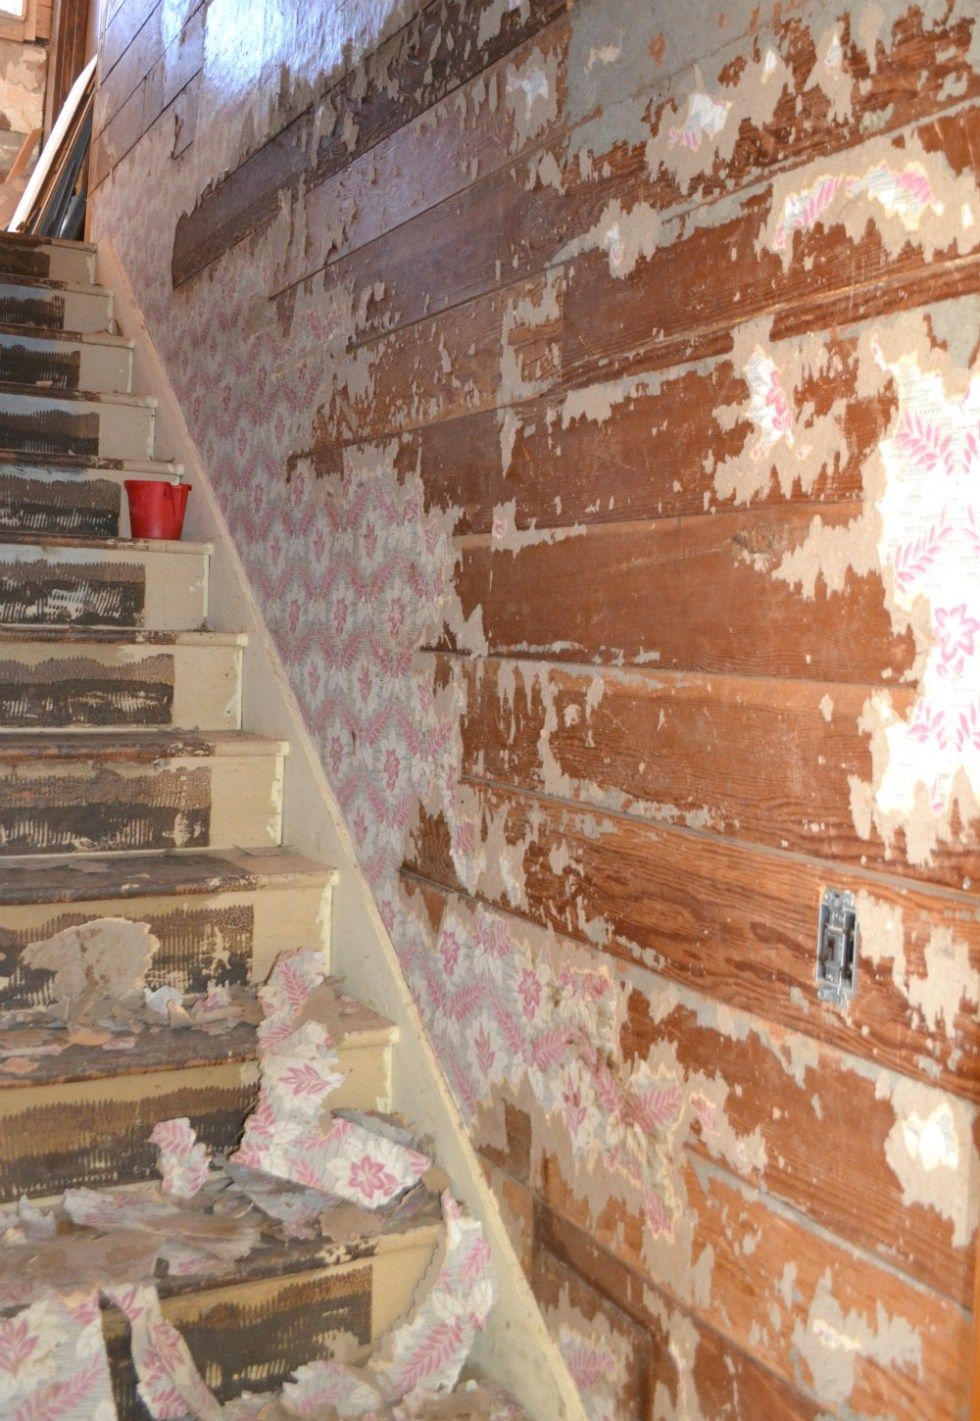 A view up a wood stairwell where the original wood is exposed with wallpaper remnants on the stairs